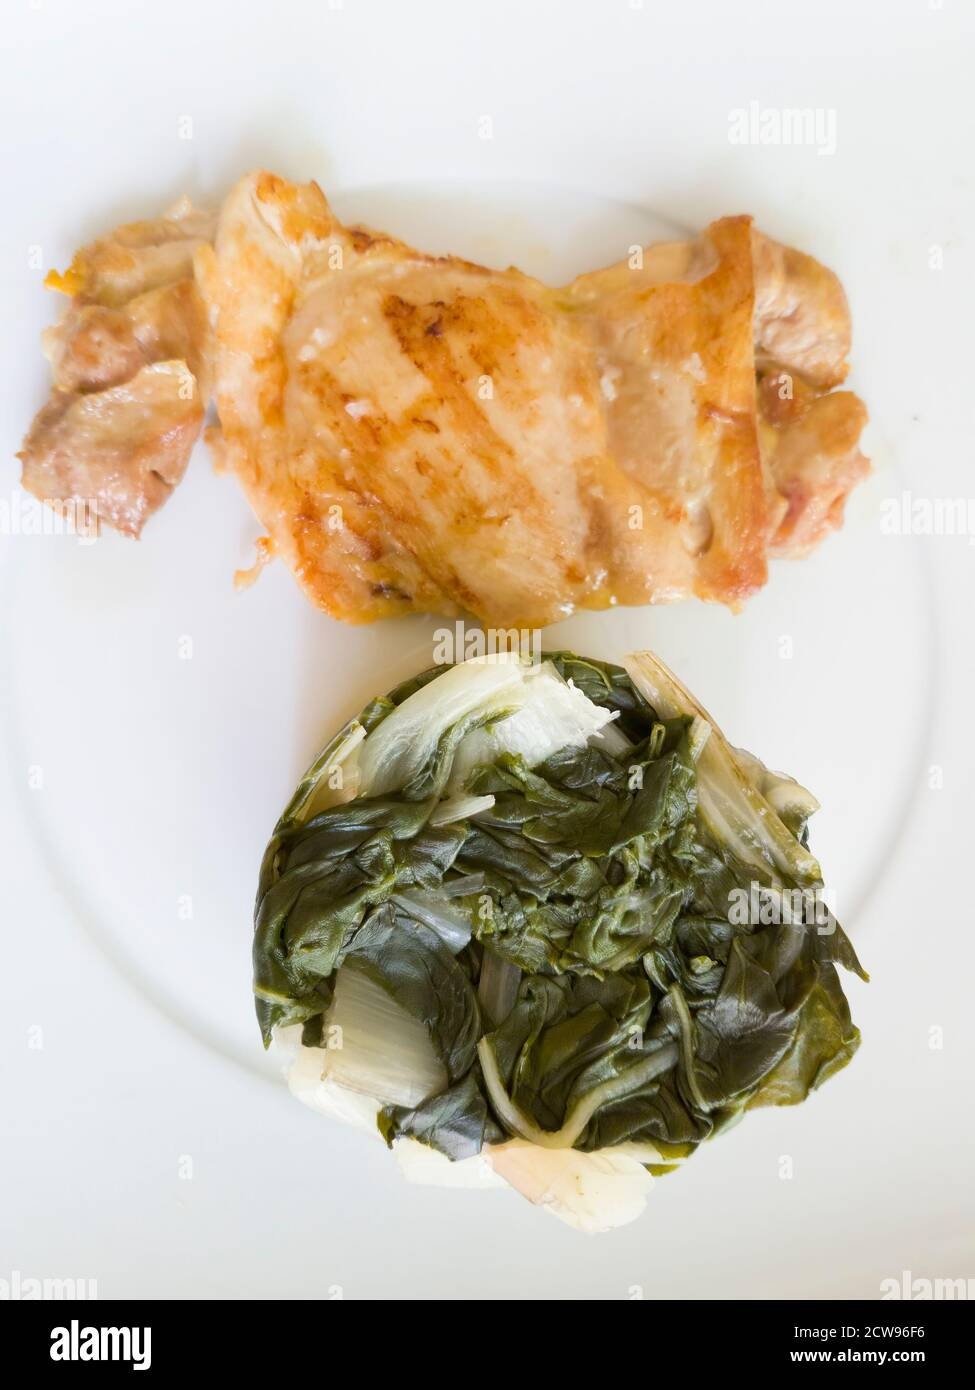 Grilled chicken garnished with chard. An ideal meal to follow a healthy and balanced diet Stock Photo